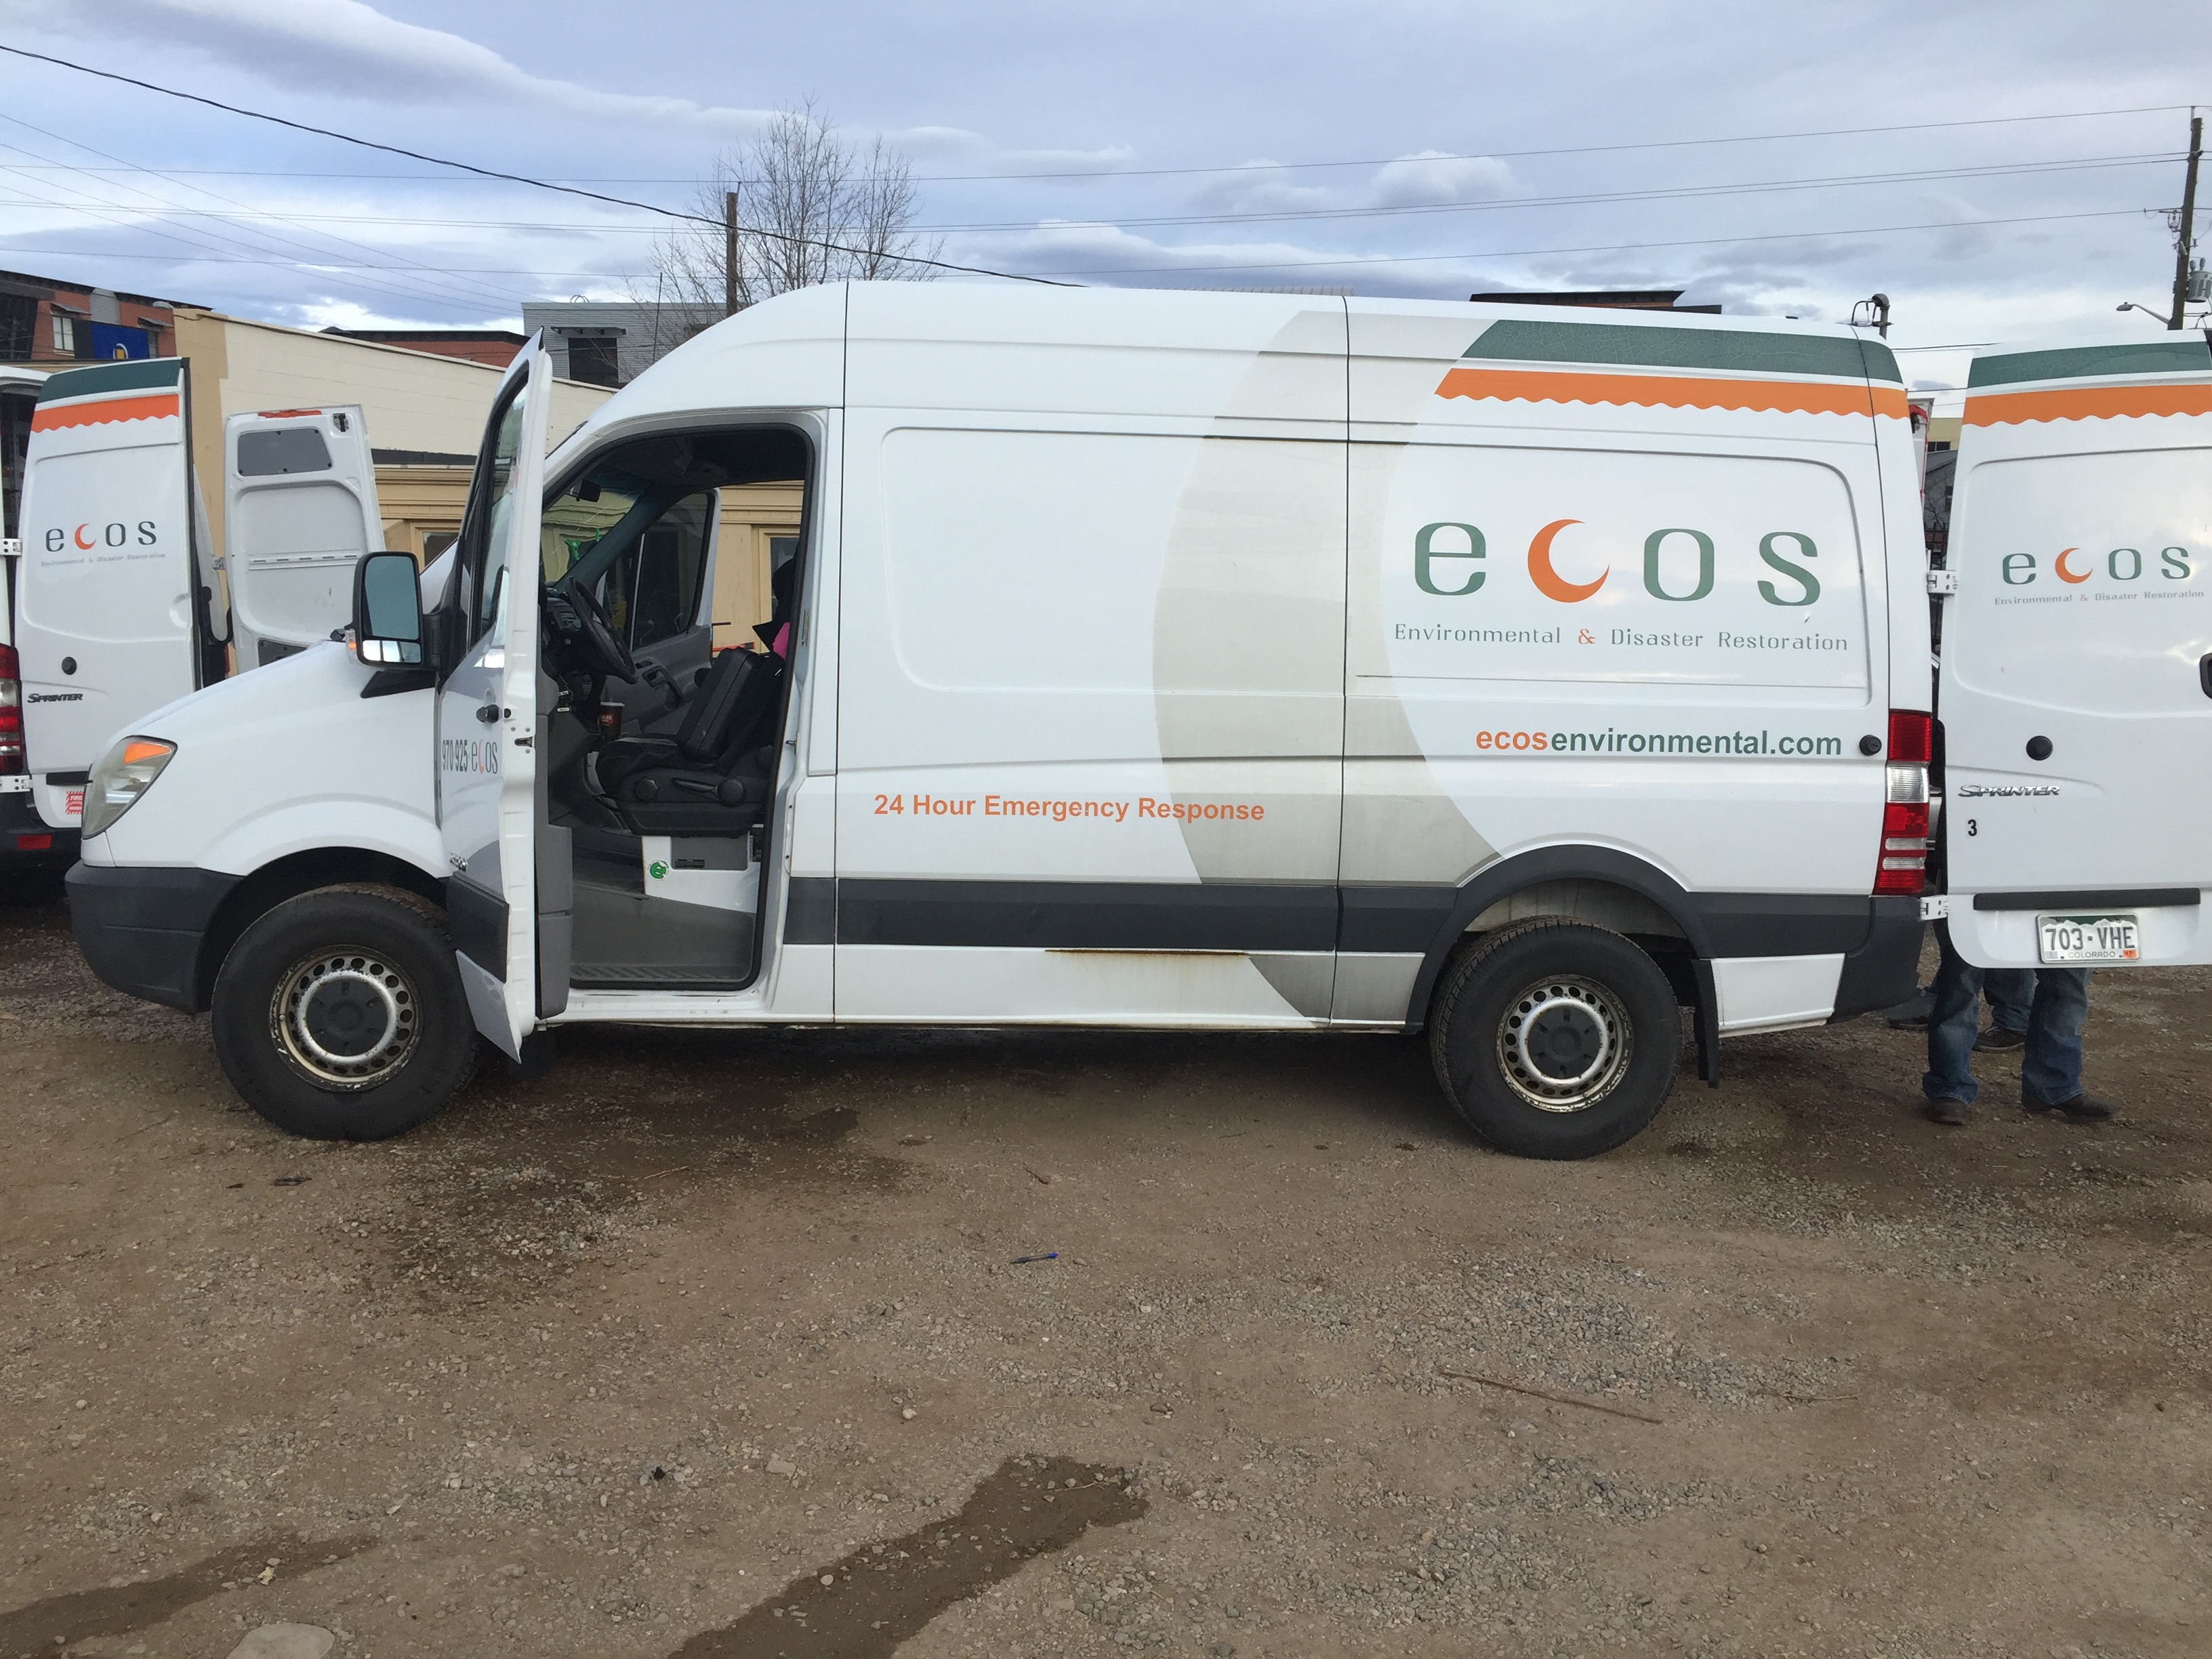 ECOS Environmental & Disaster Restoration, Inc. image 20